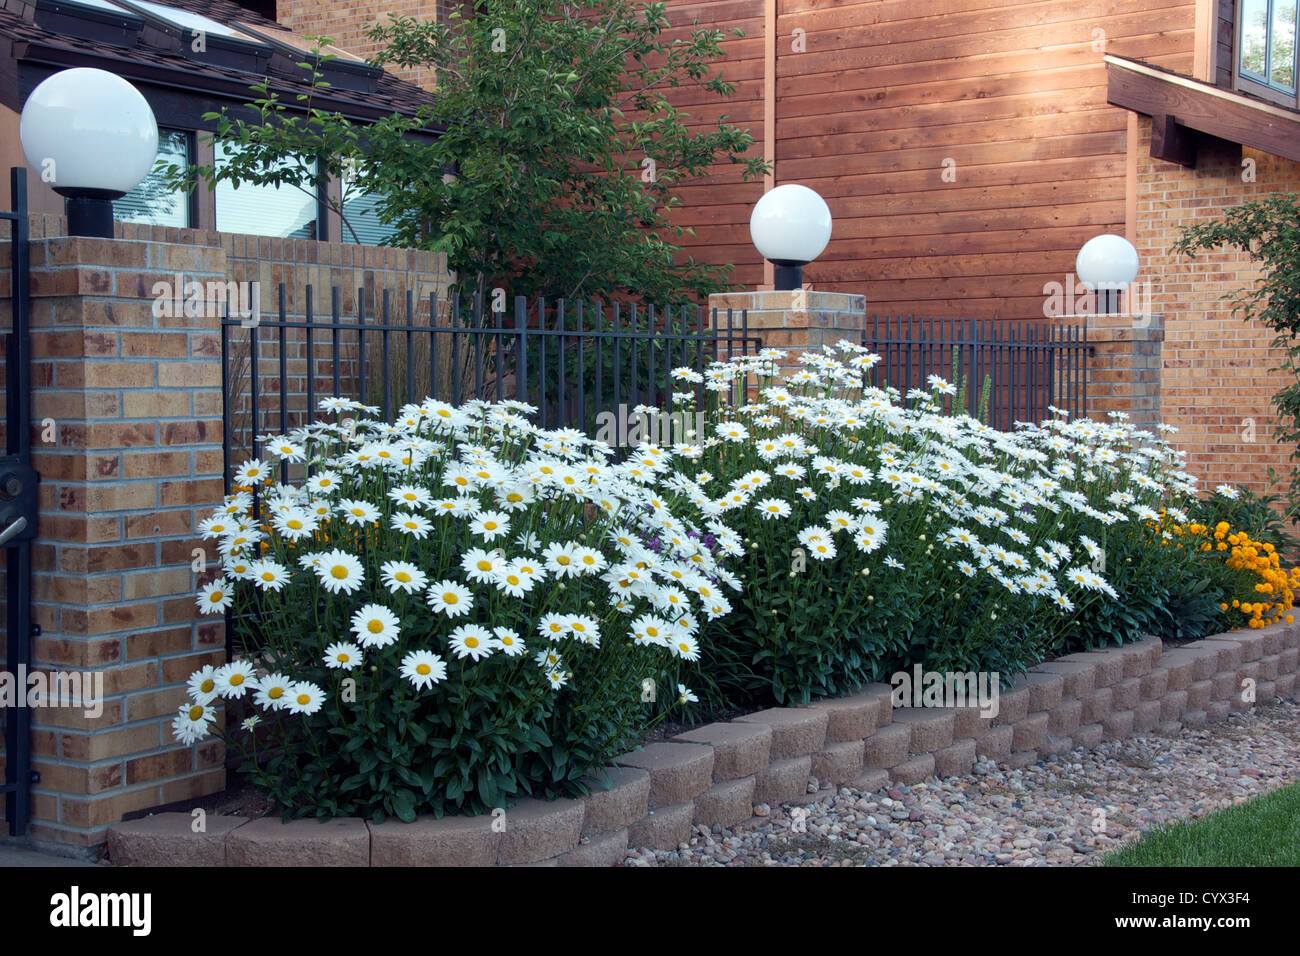 Shasta daisies stock photos shasta daisies stock images alamy shasta daisies growing in a raised bed stock image izmirmasajfo